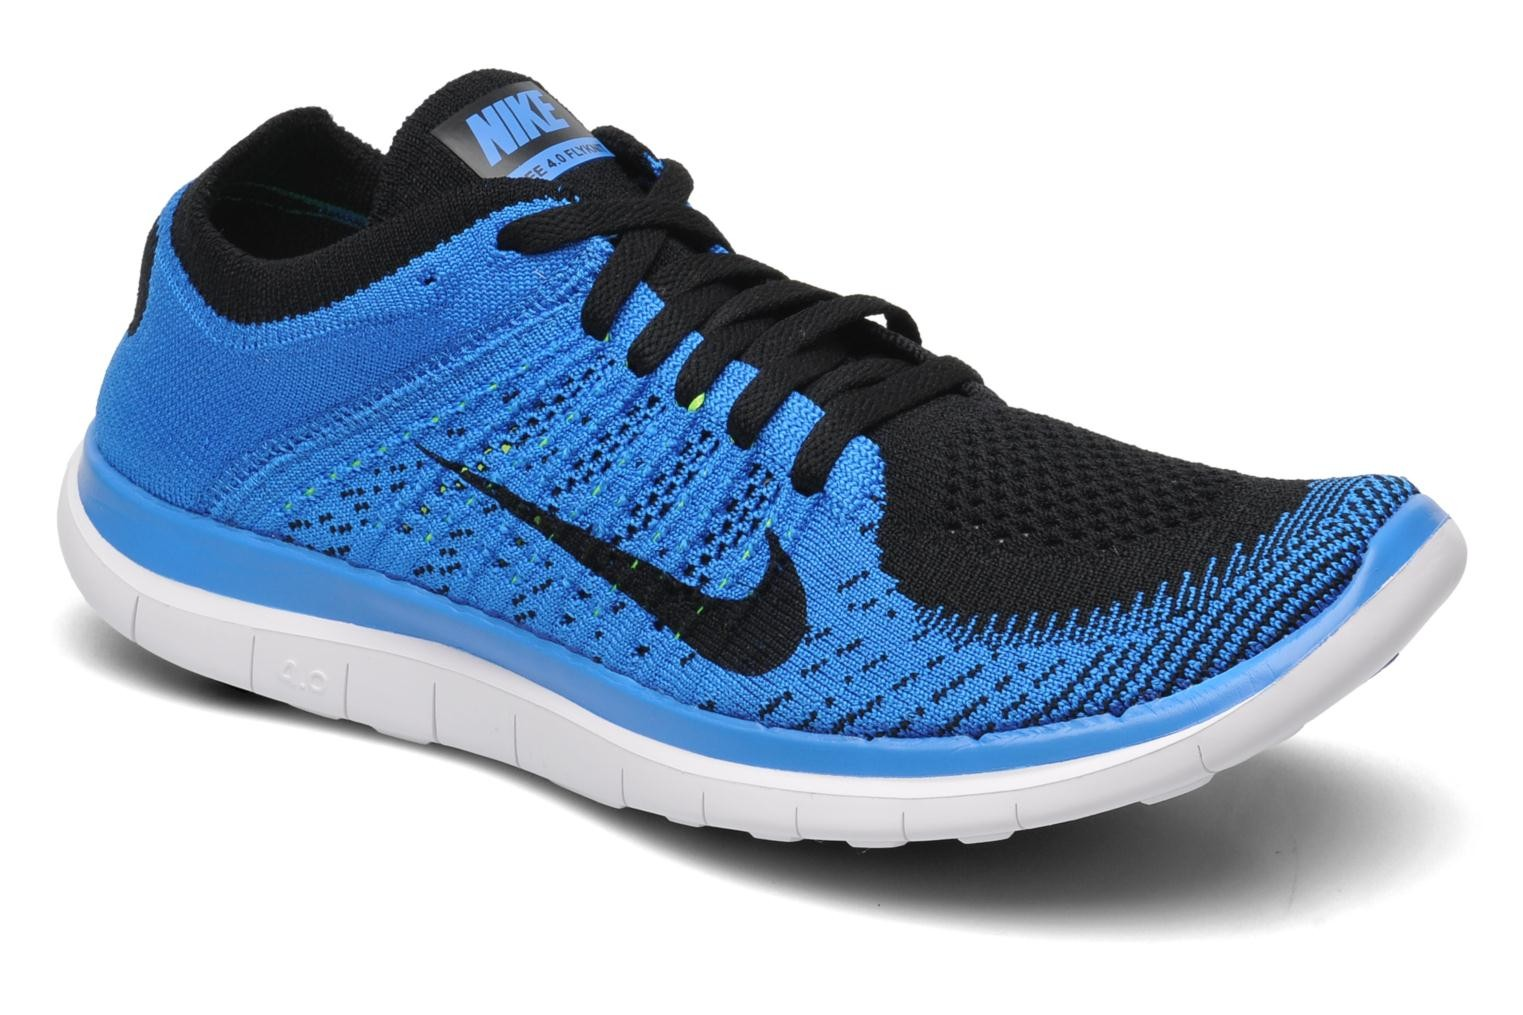 Nike Free 4.0 Flyknit Black/Black-Photo Blue-White Men's Running Shoes